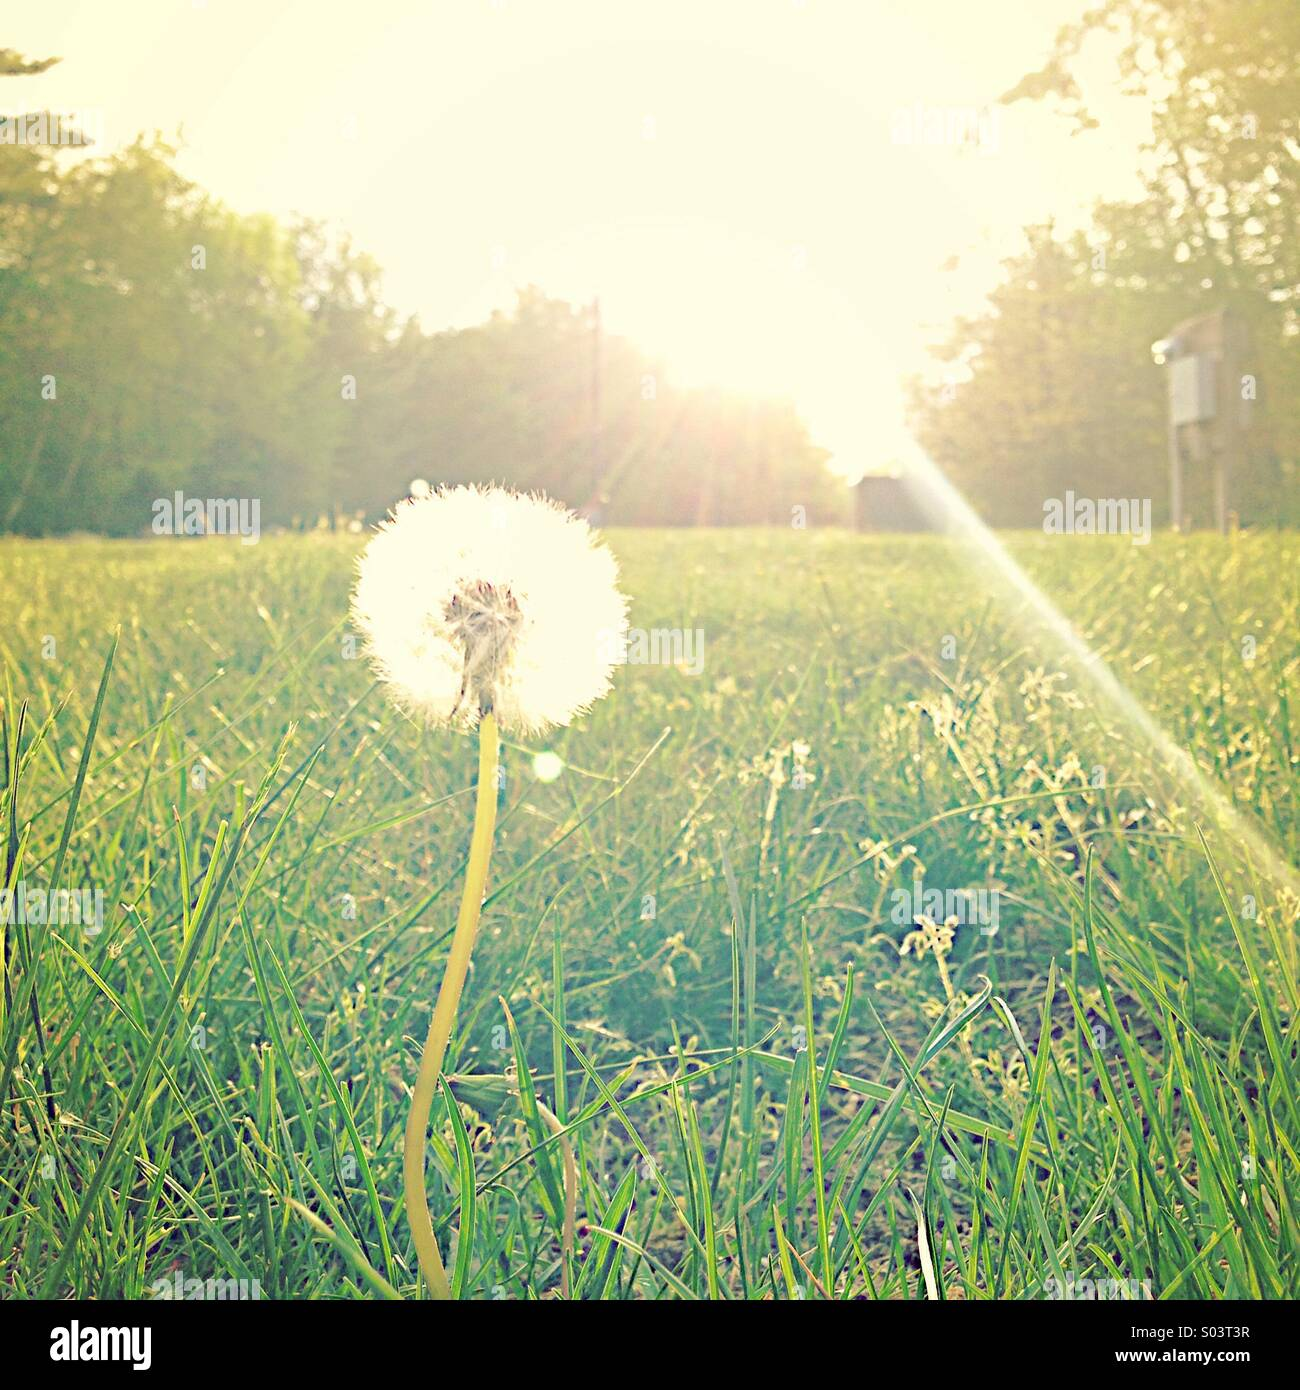 Dandelion in the sun - Stock Image